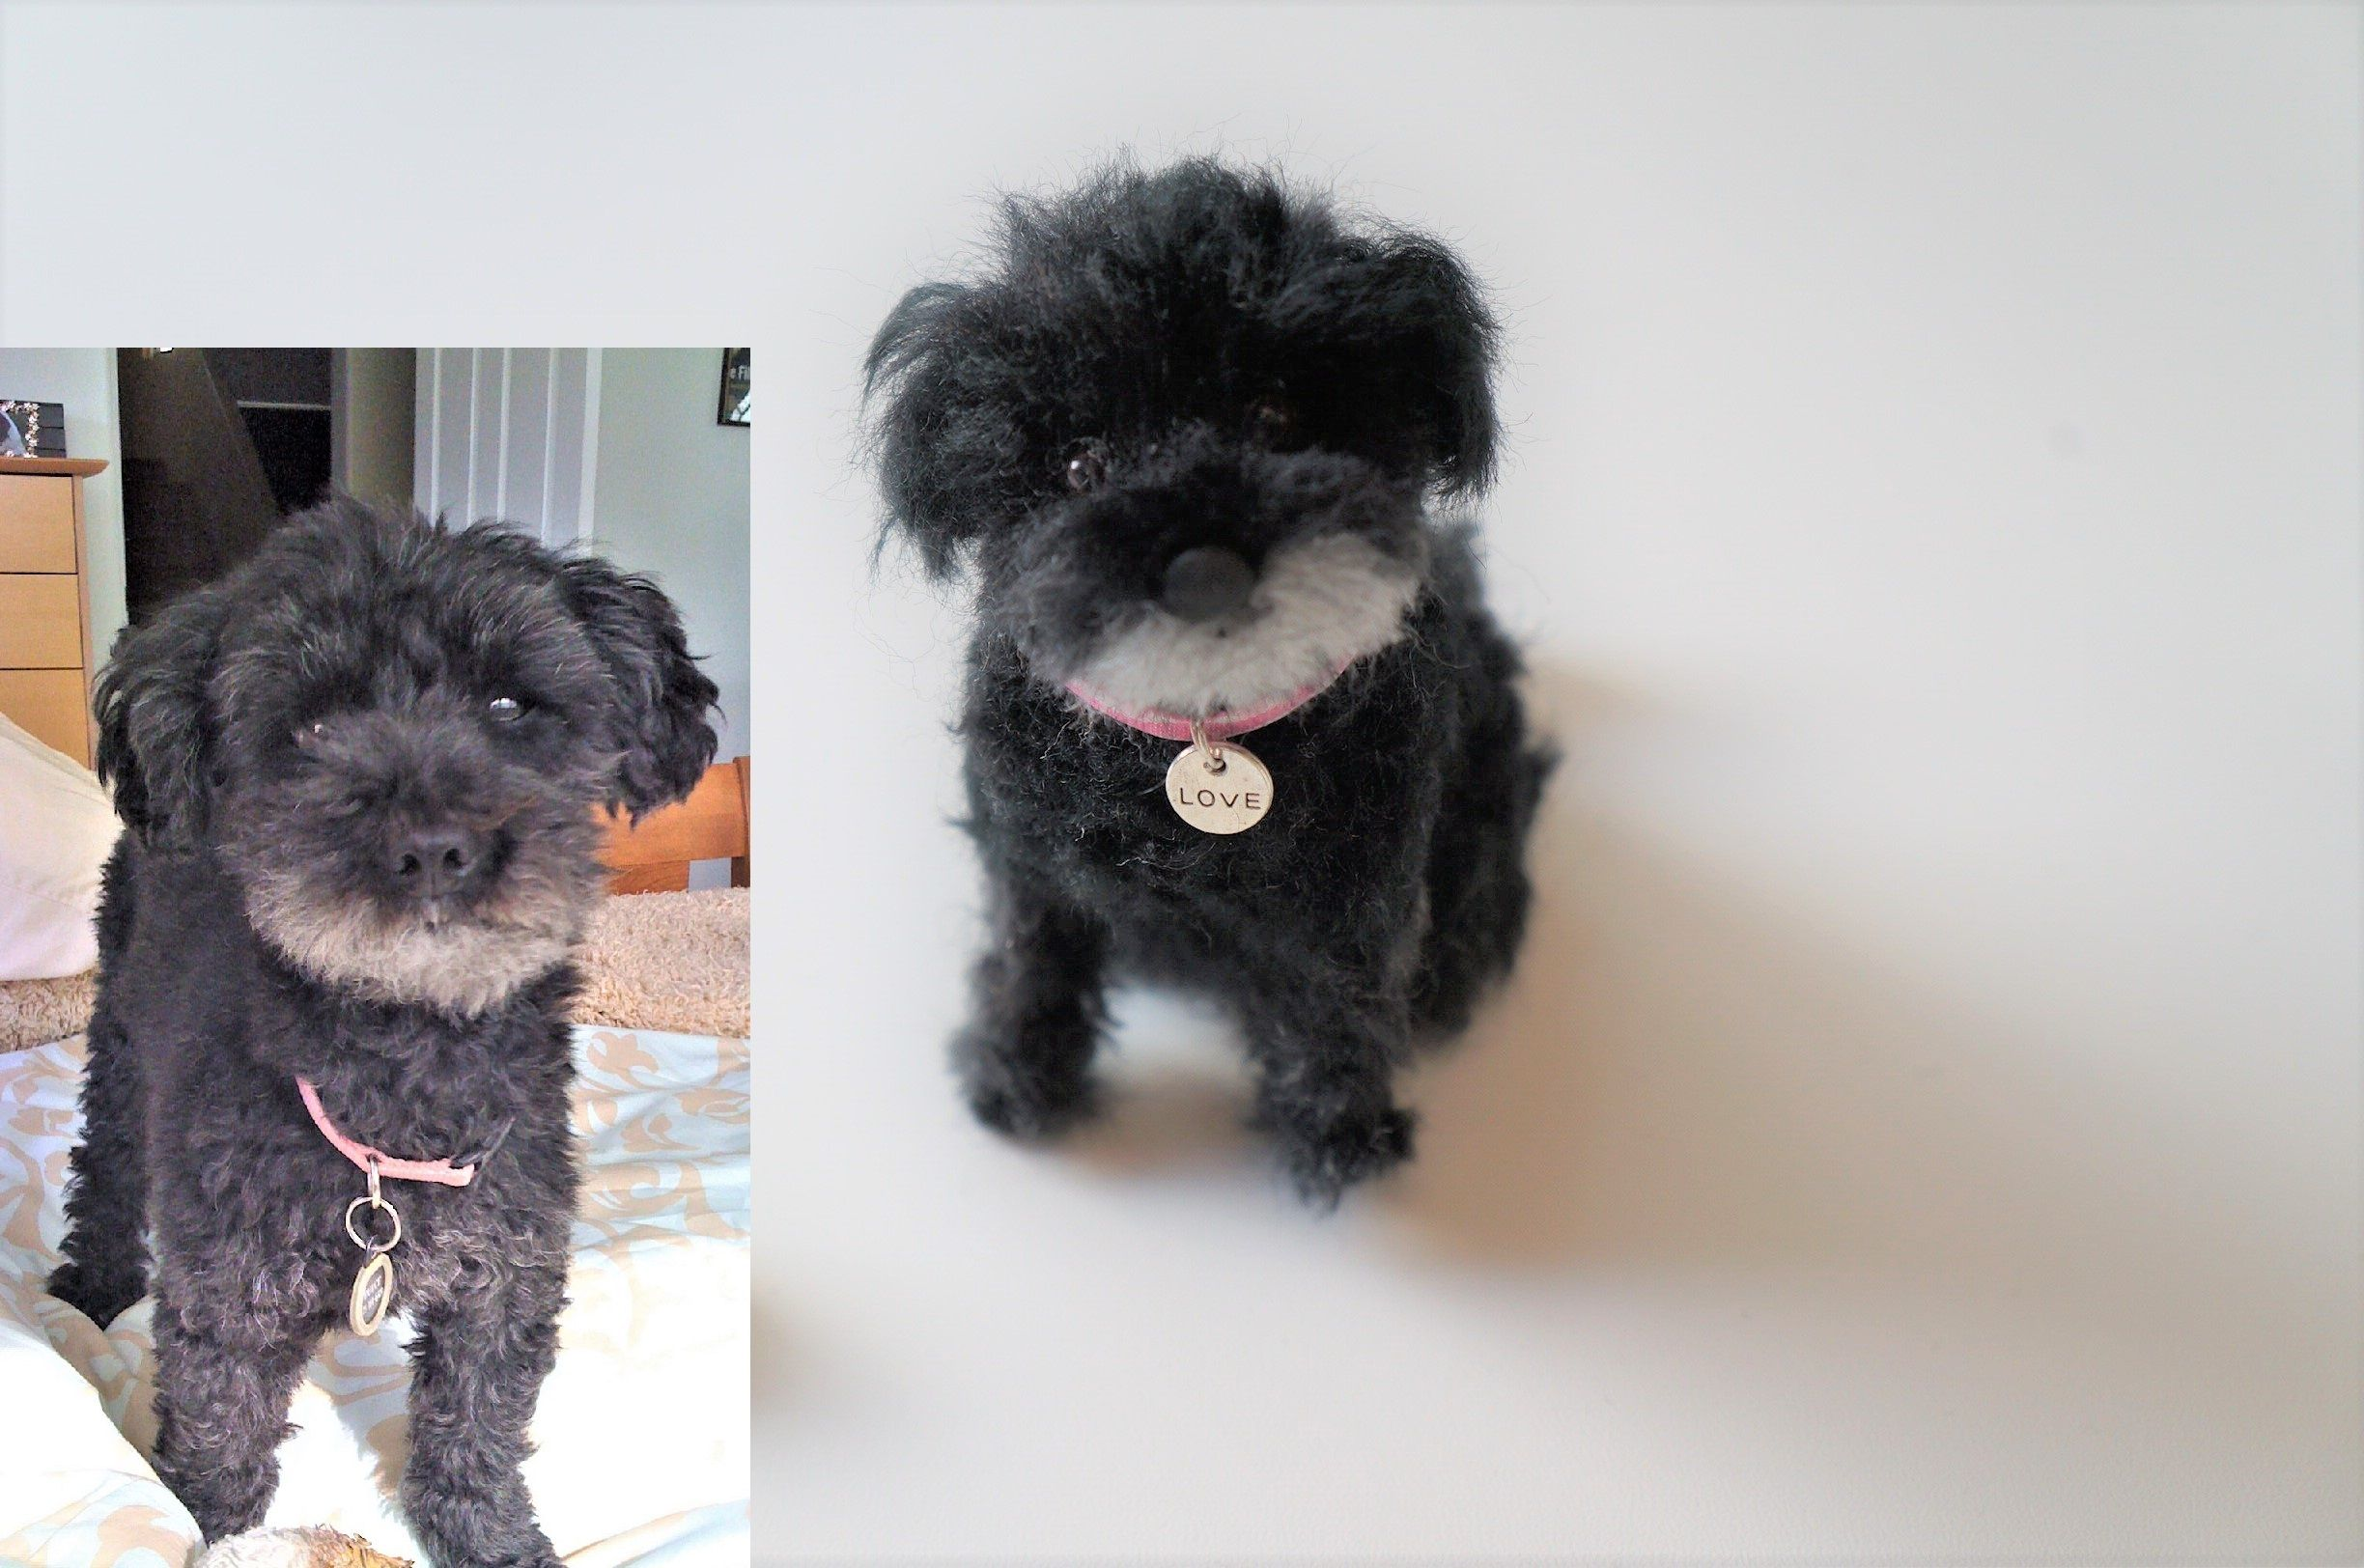 """This is """"Dolce"""". Not sure of the breed. Maybe a poodle?  #JanetsNeedleFelting #3dpetportrait #petreplica #petloss #handmadegift #arts #dogart #poodle #diy #petmemorial"""